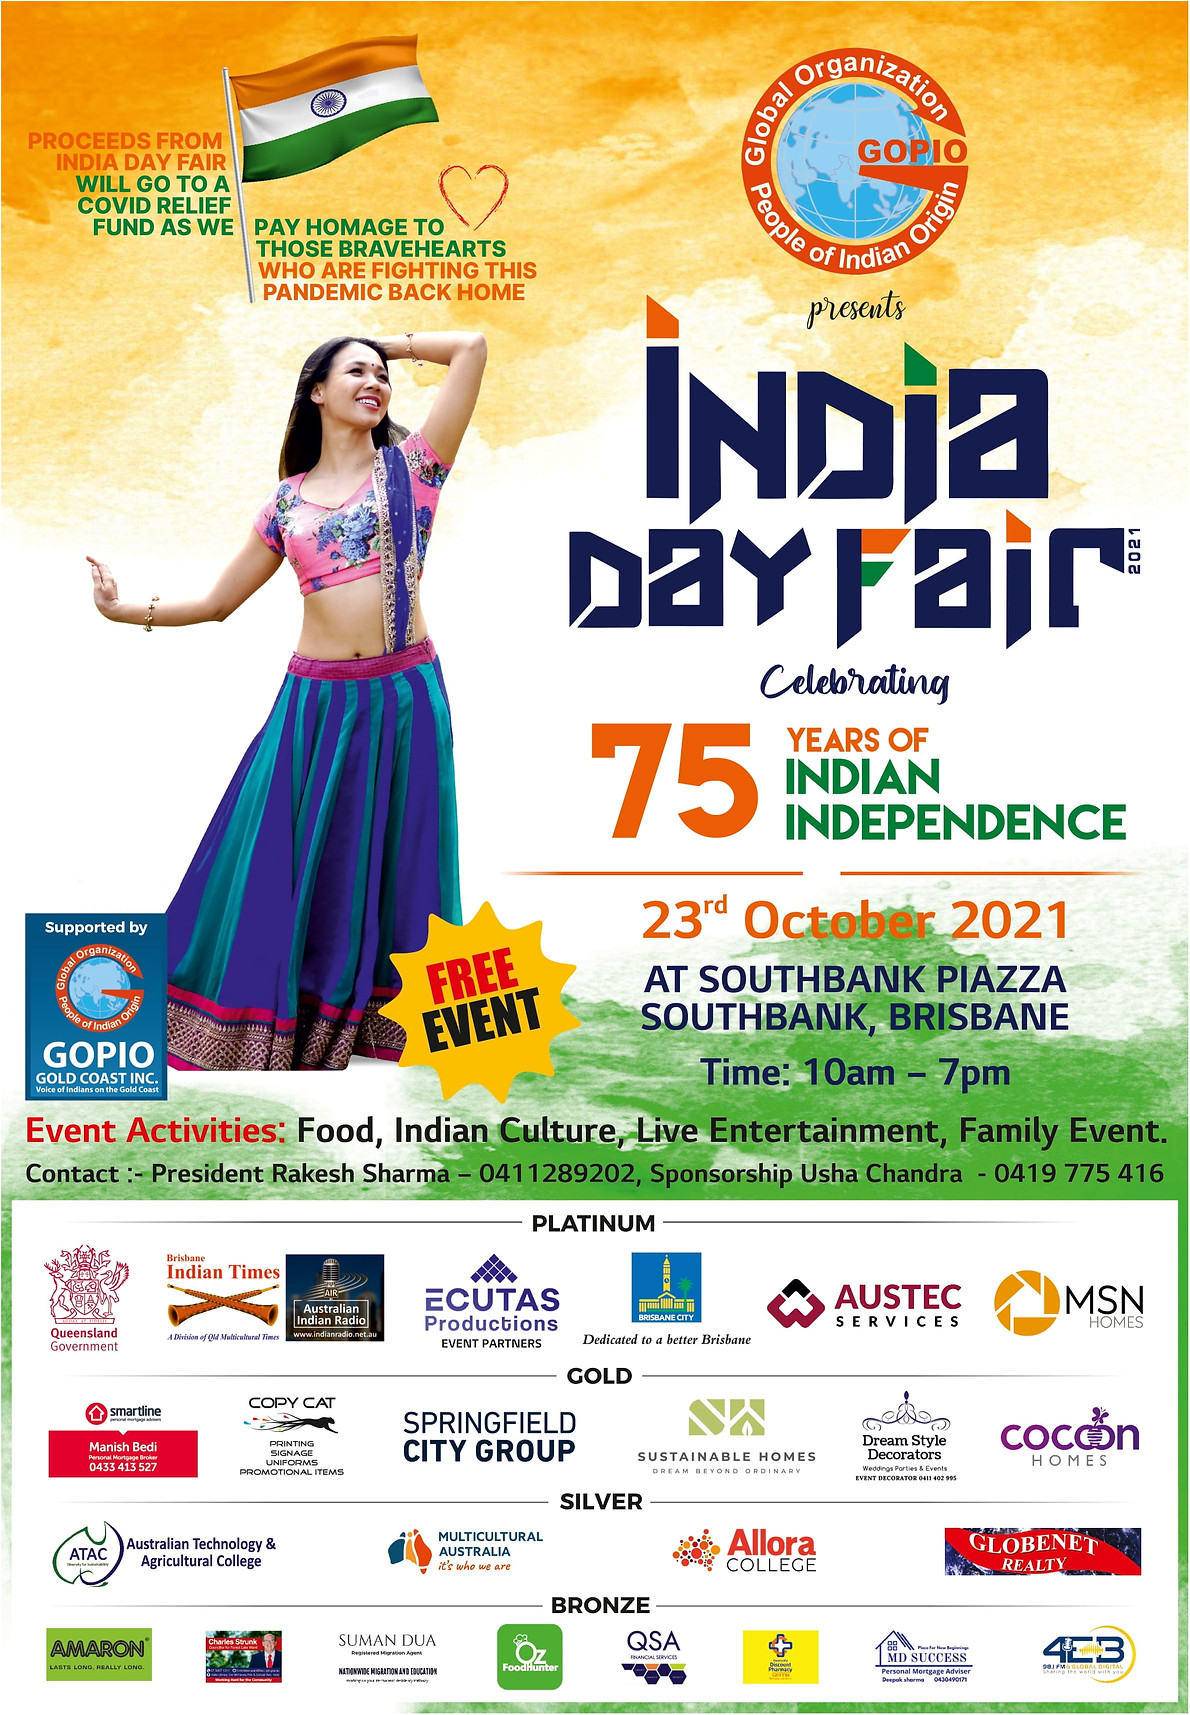 INDIA DAY FAIR POSTER - UP02 31 Aug-1.jpg